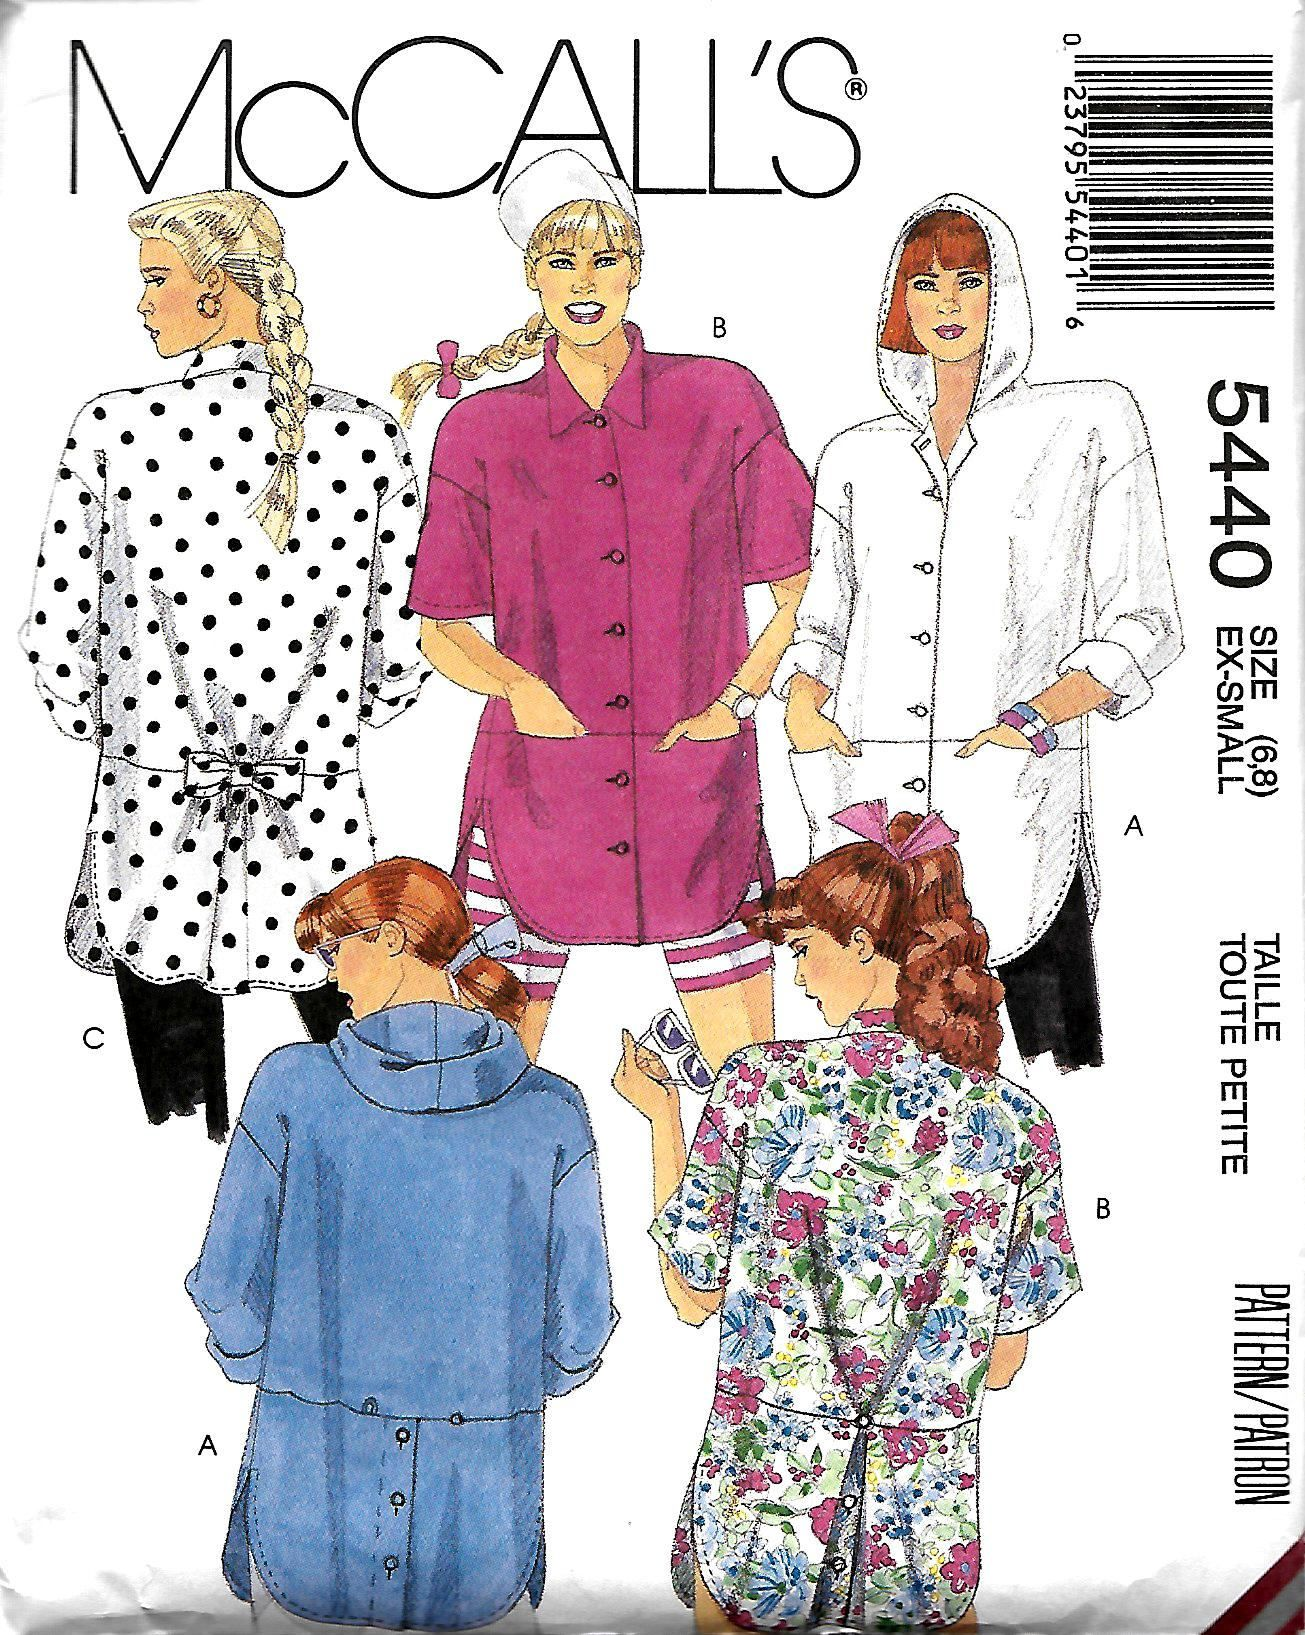 842e6a84 McCall's 5440 Misses Oversized Shirts Sewing Pattern, Size 6-8, UNCUT by  DawnsDesignBoutique on Etsy